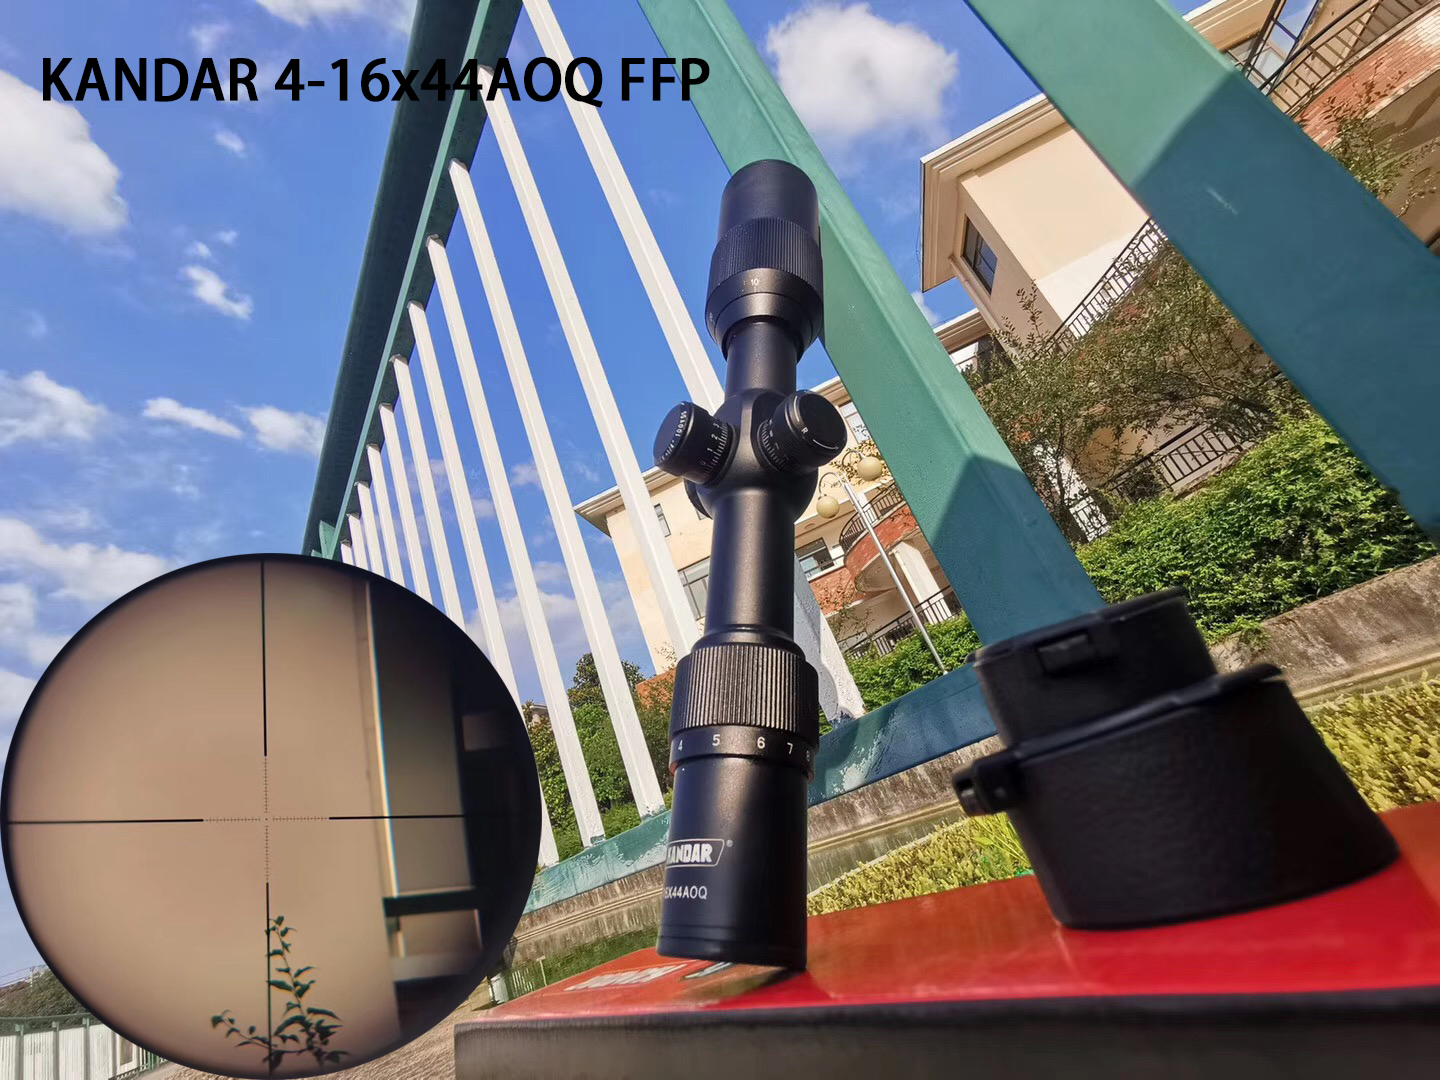 Hunting Riflescope 4-16x44 FFP Scope With Red Dot First Focal Plane Optics With 11 Or 20MM Rail Black Rifle Scope